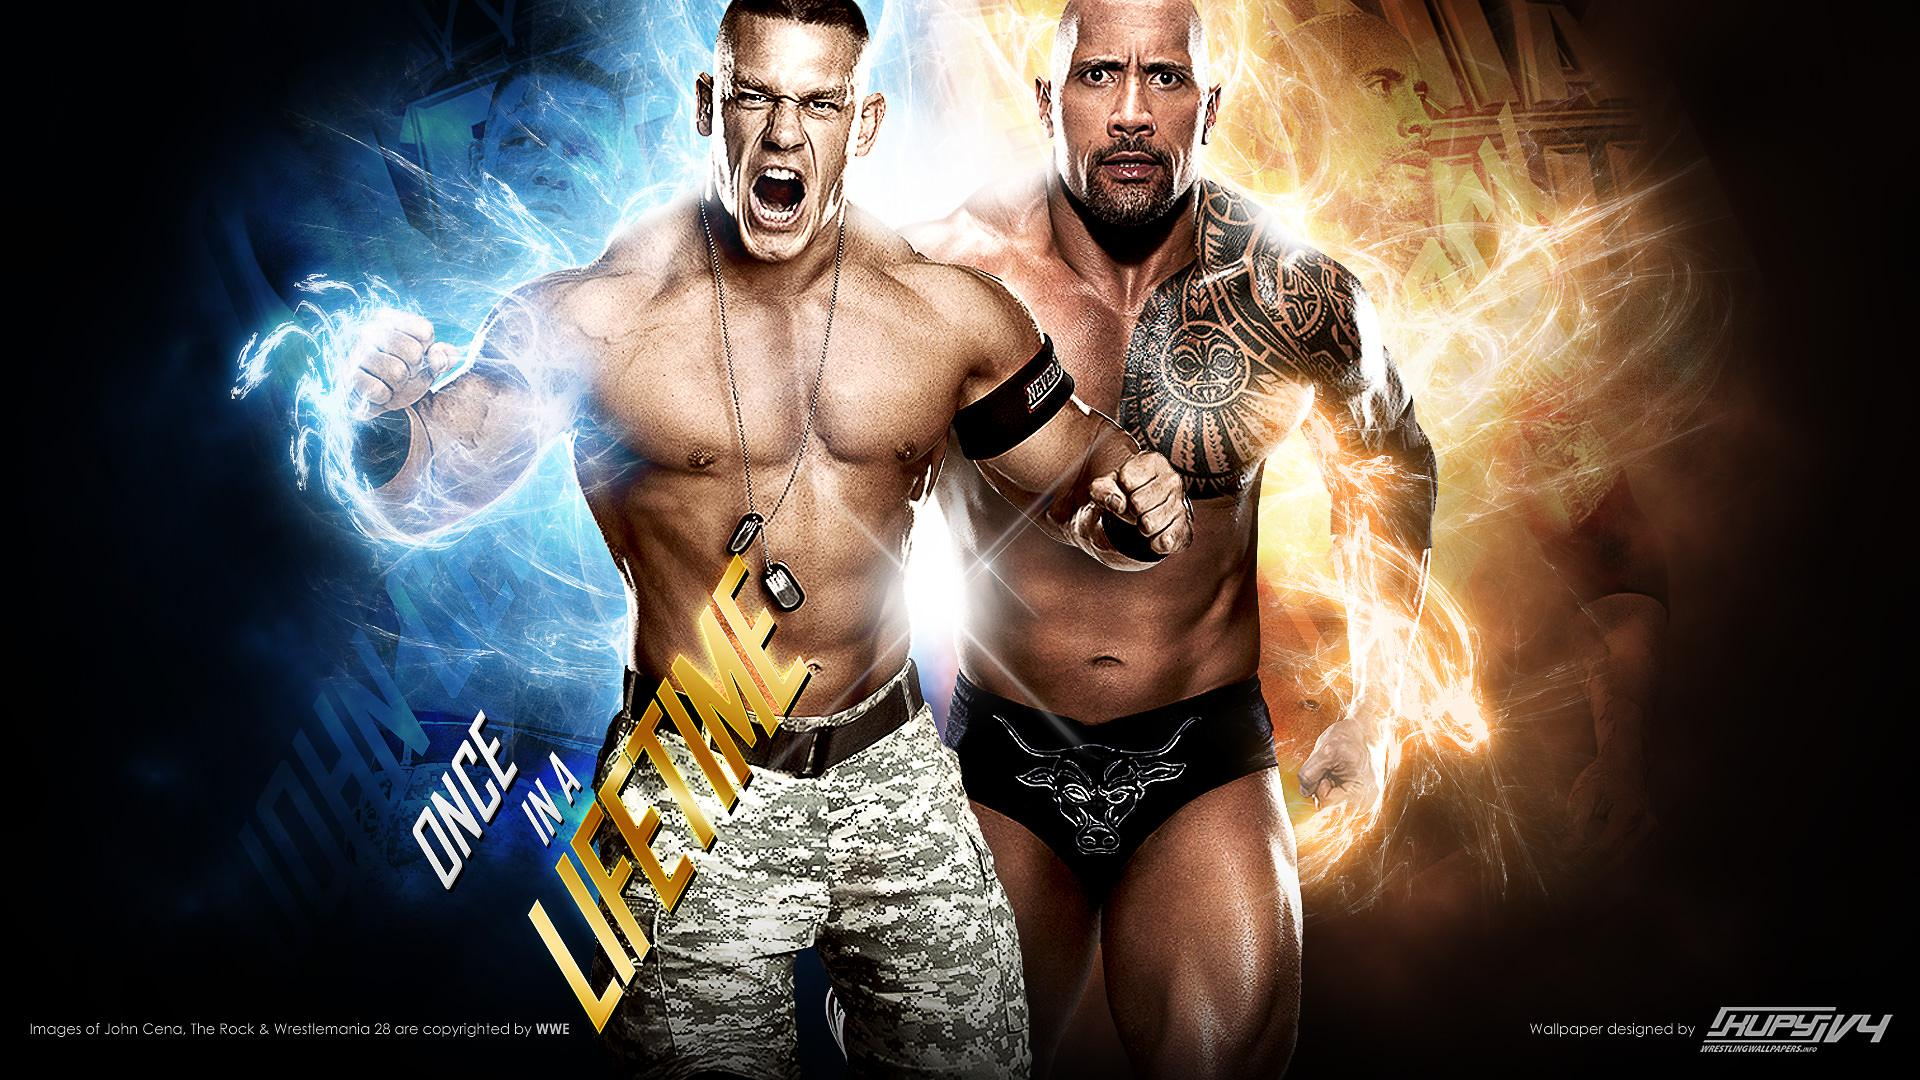 NEW Road to WrestleMania 28: John Cena vs. The Rock Once In A